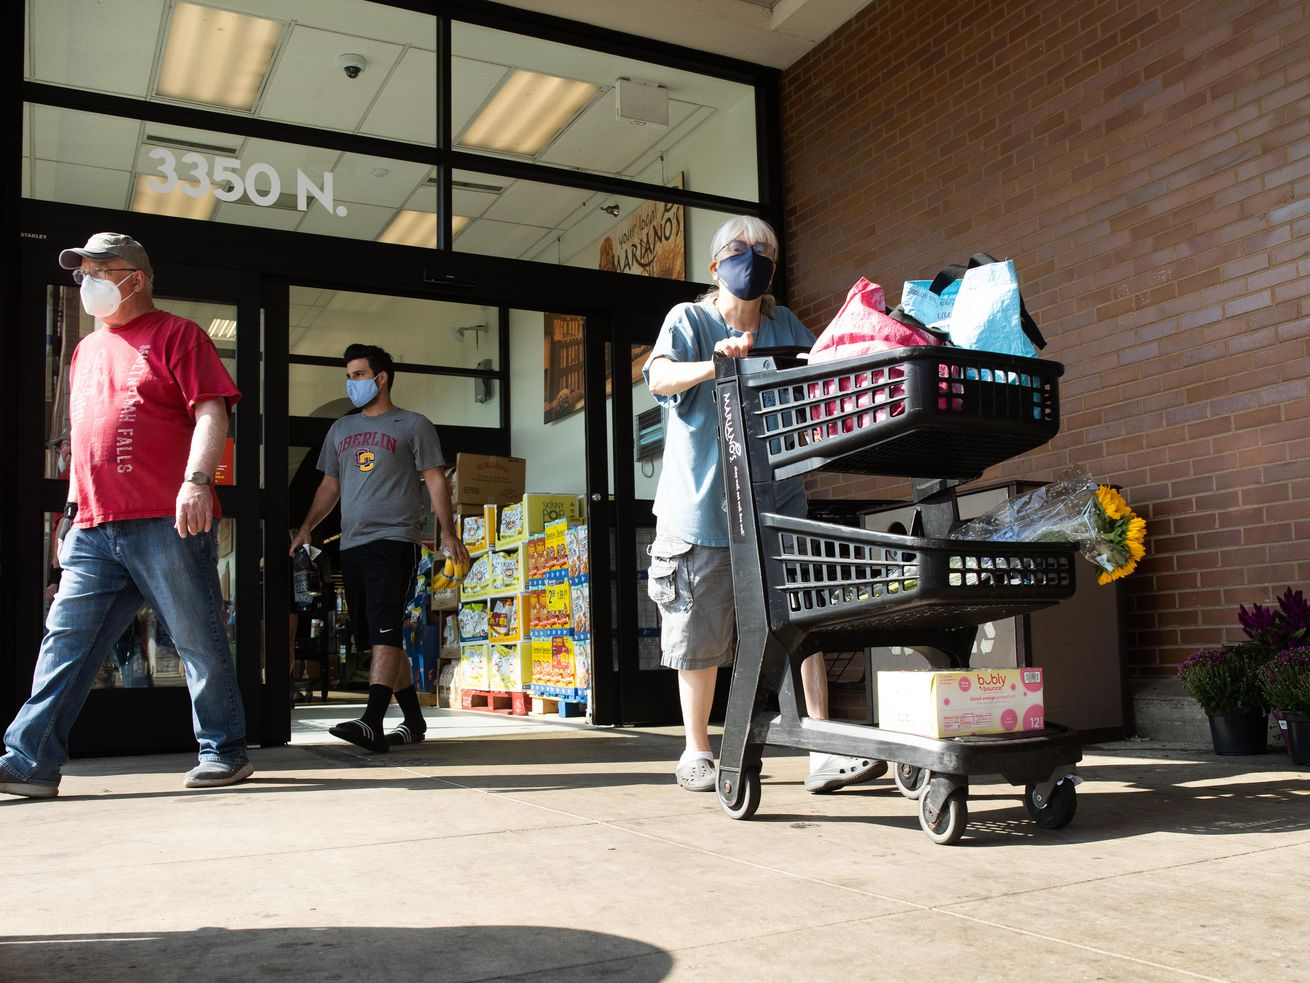 People exit Mariano's in the Roscoe Village neighborhood, Friday morning, Aug. 20, 2021. An indoor mask mandate for both vaccinated and unvaccinated people two years old or older took effect again on Friday to stop the spread of COVID-19 as cases rise due to the Delta variant.